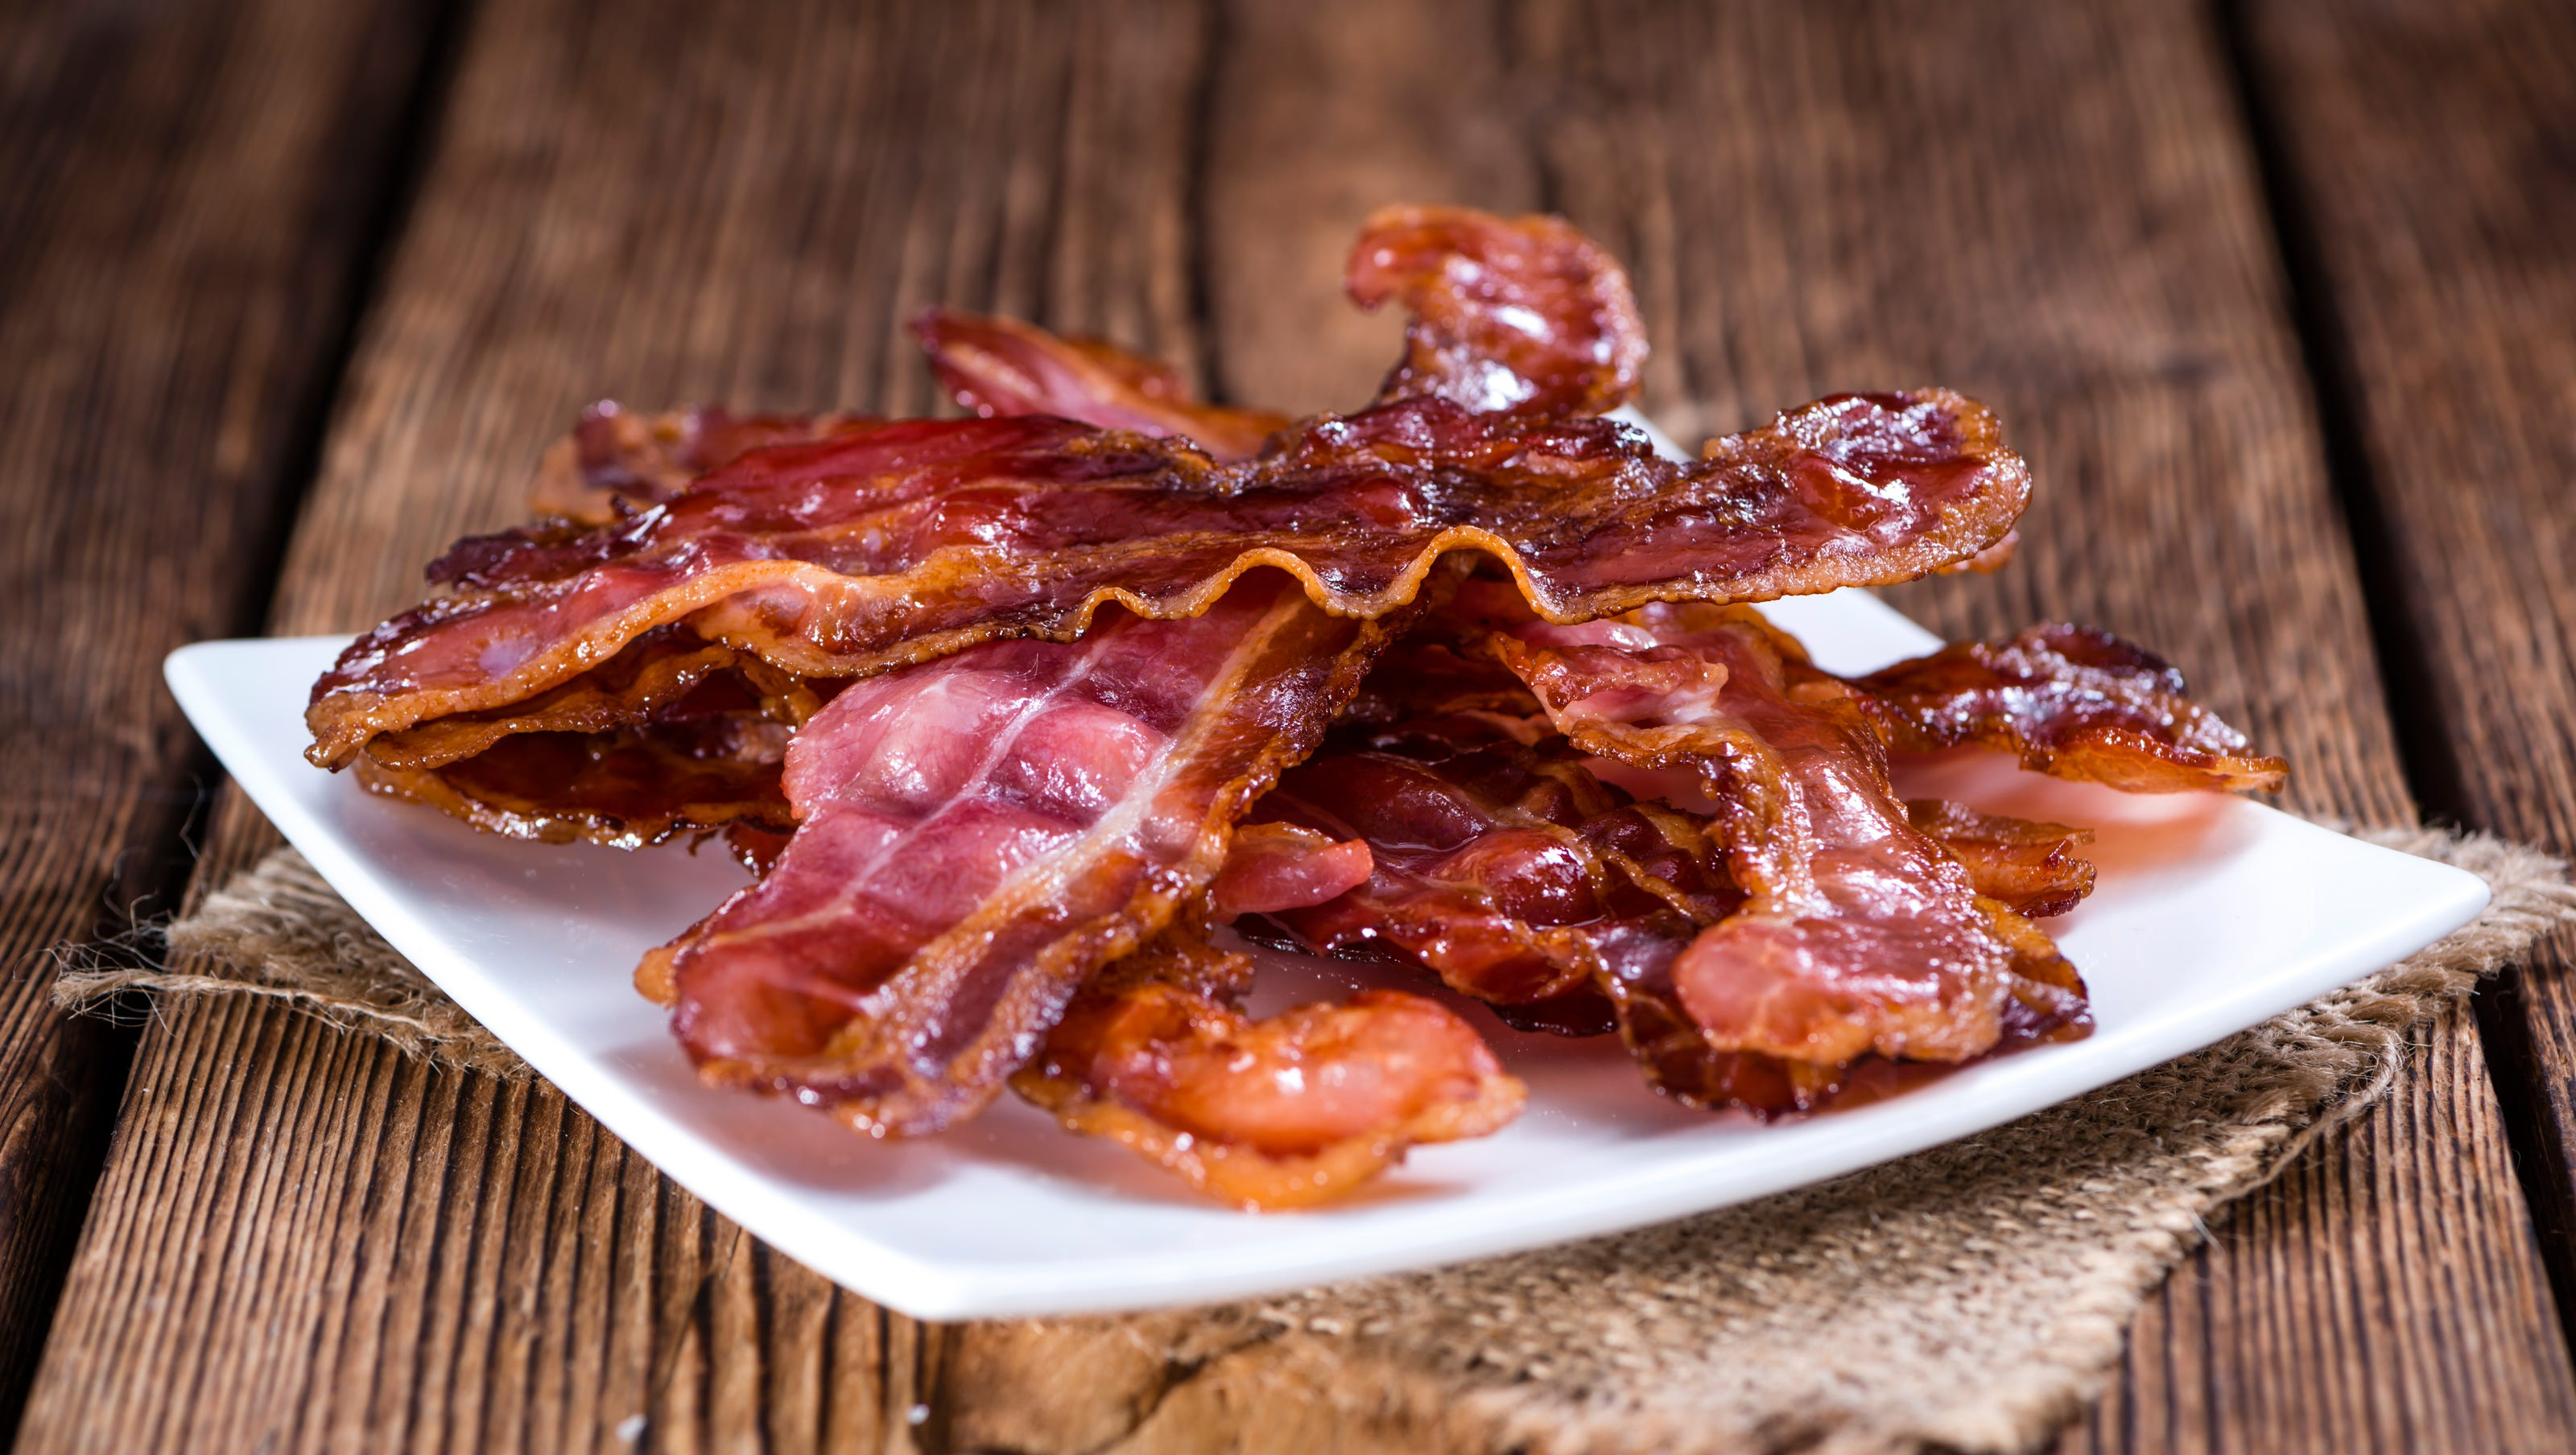 Nutella Bacon And Other Foods You Love That Are Linked To Cancer